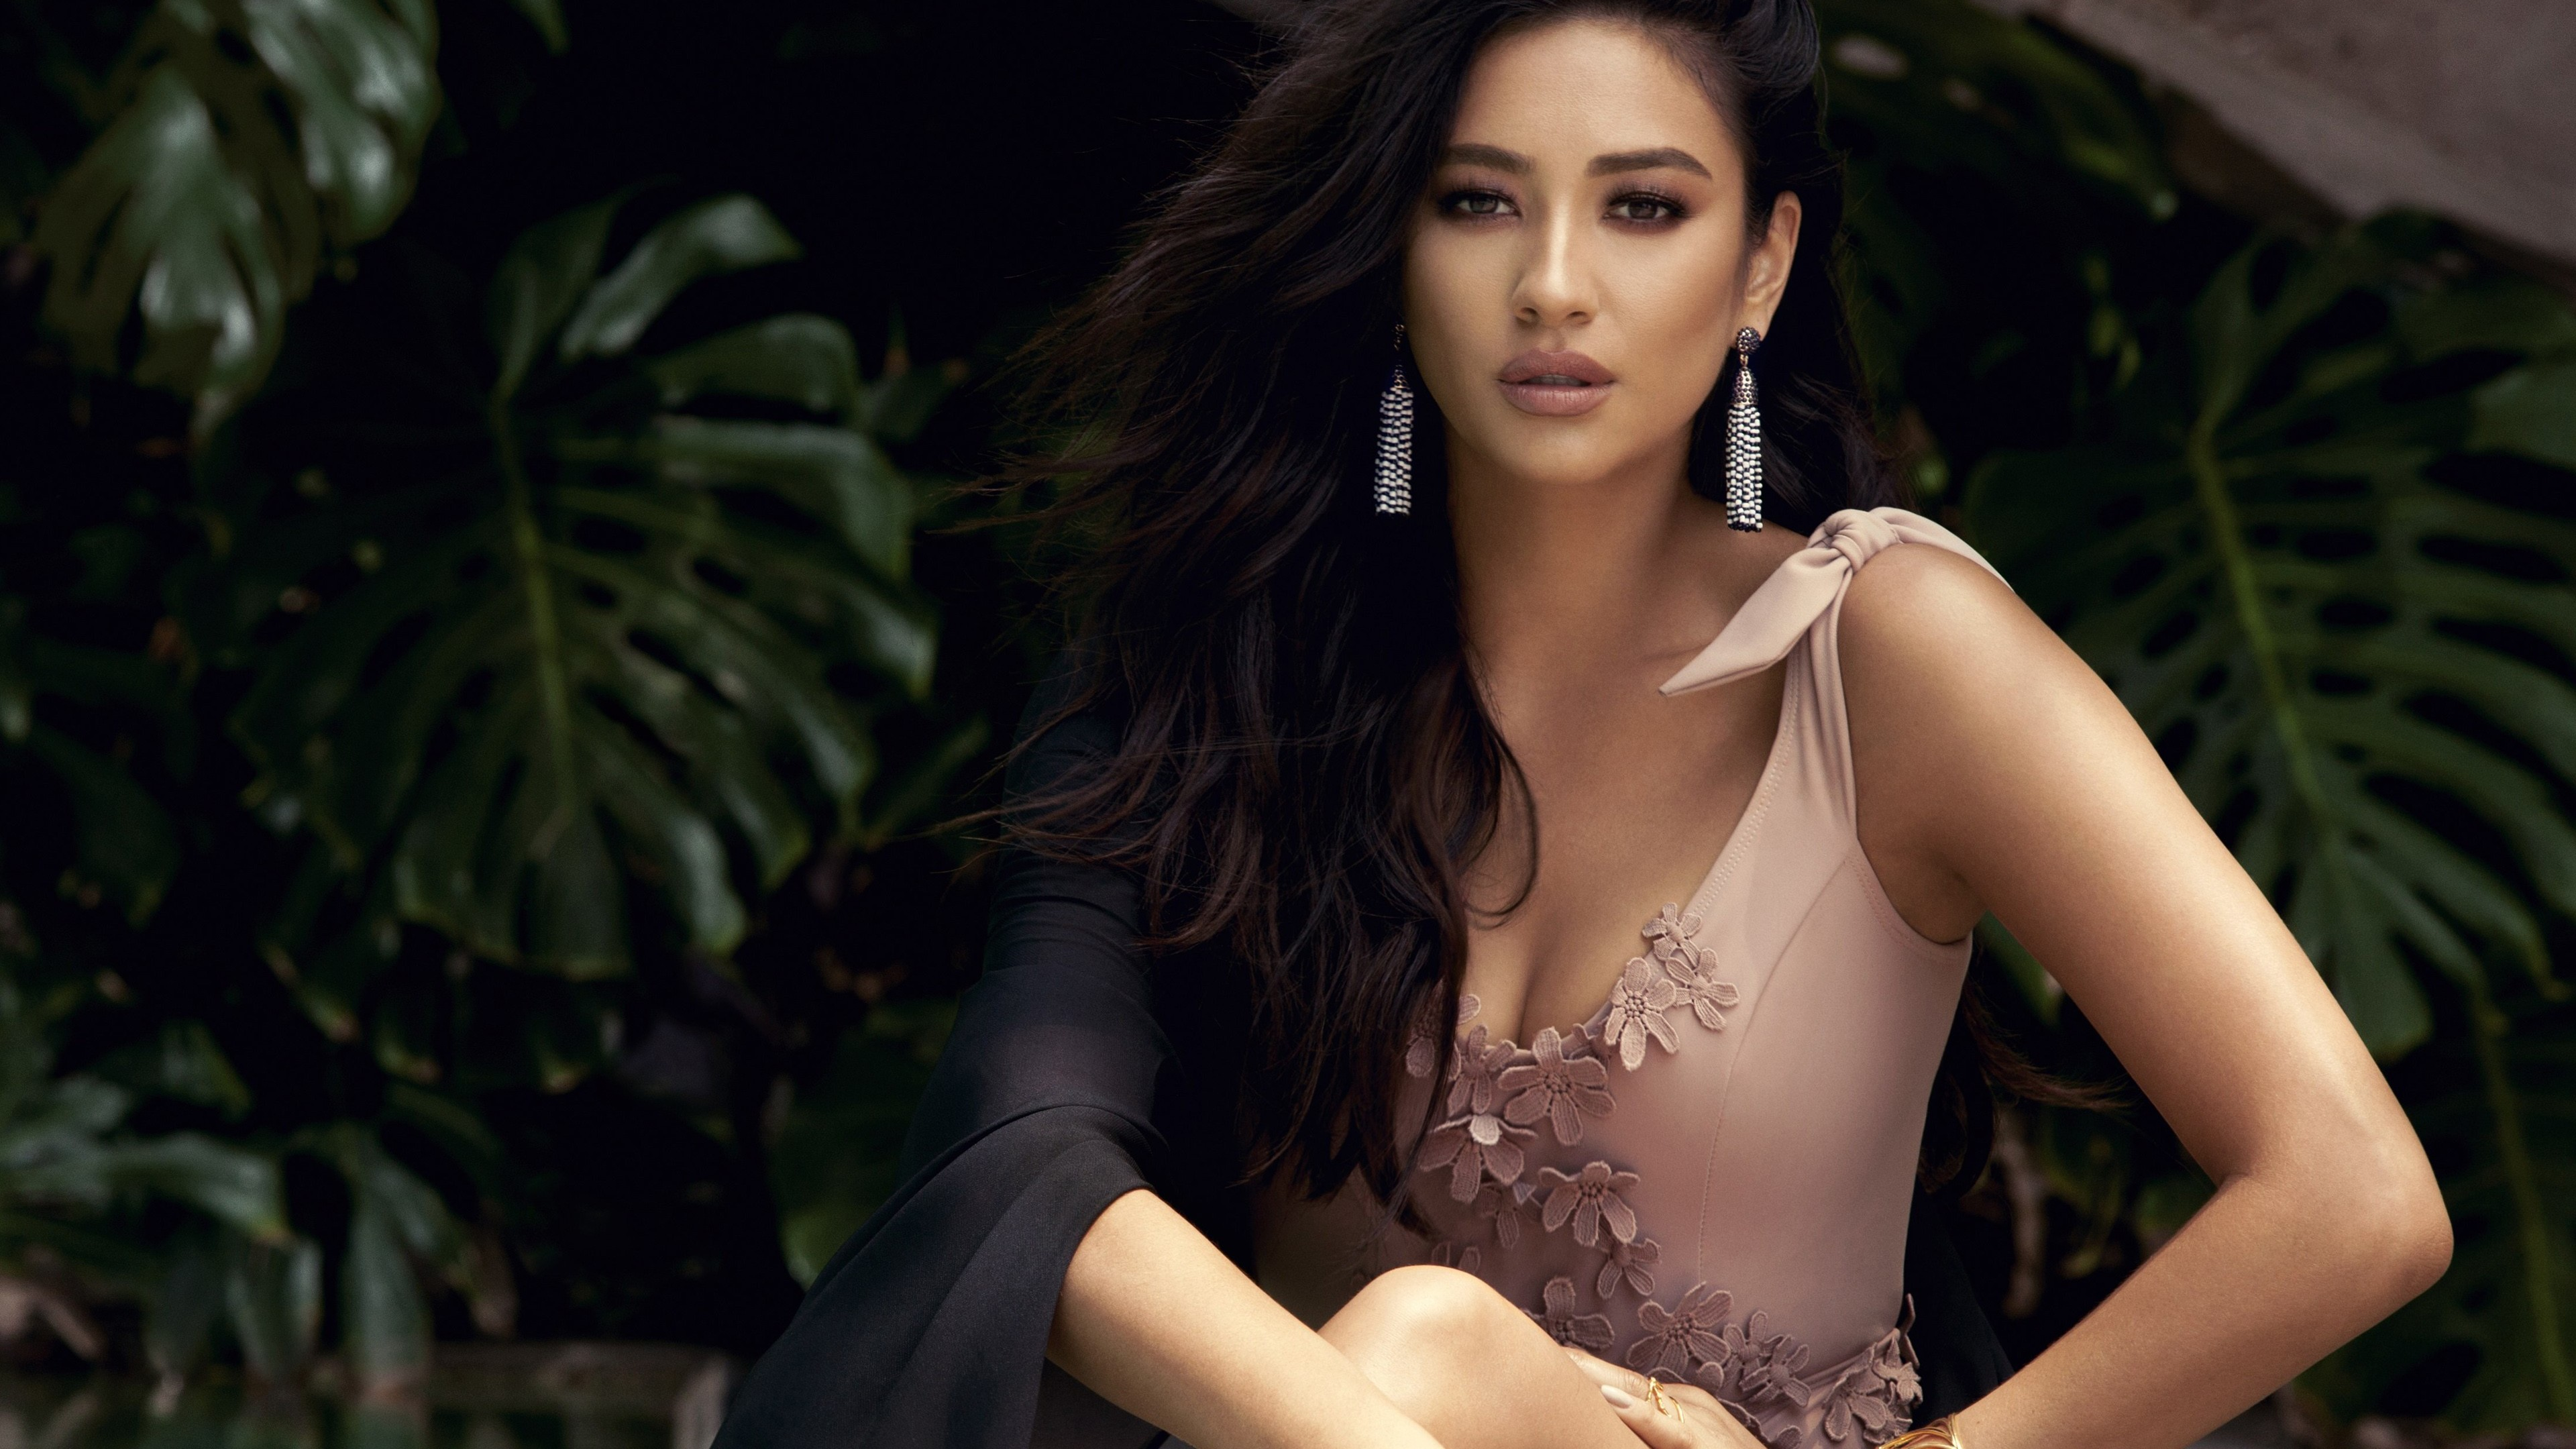 shay mitchell 4k 1536950195 - Shay Mitchell 4k - shay mitchell wallpapers, hd-wallpapers, girls wallpapers, celebrities wallpapers, 4k-wallpapers